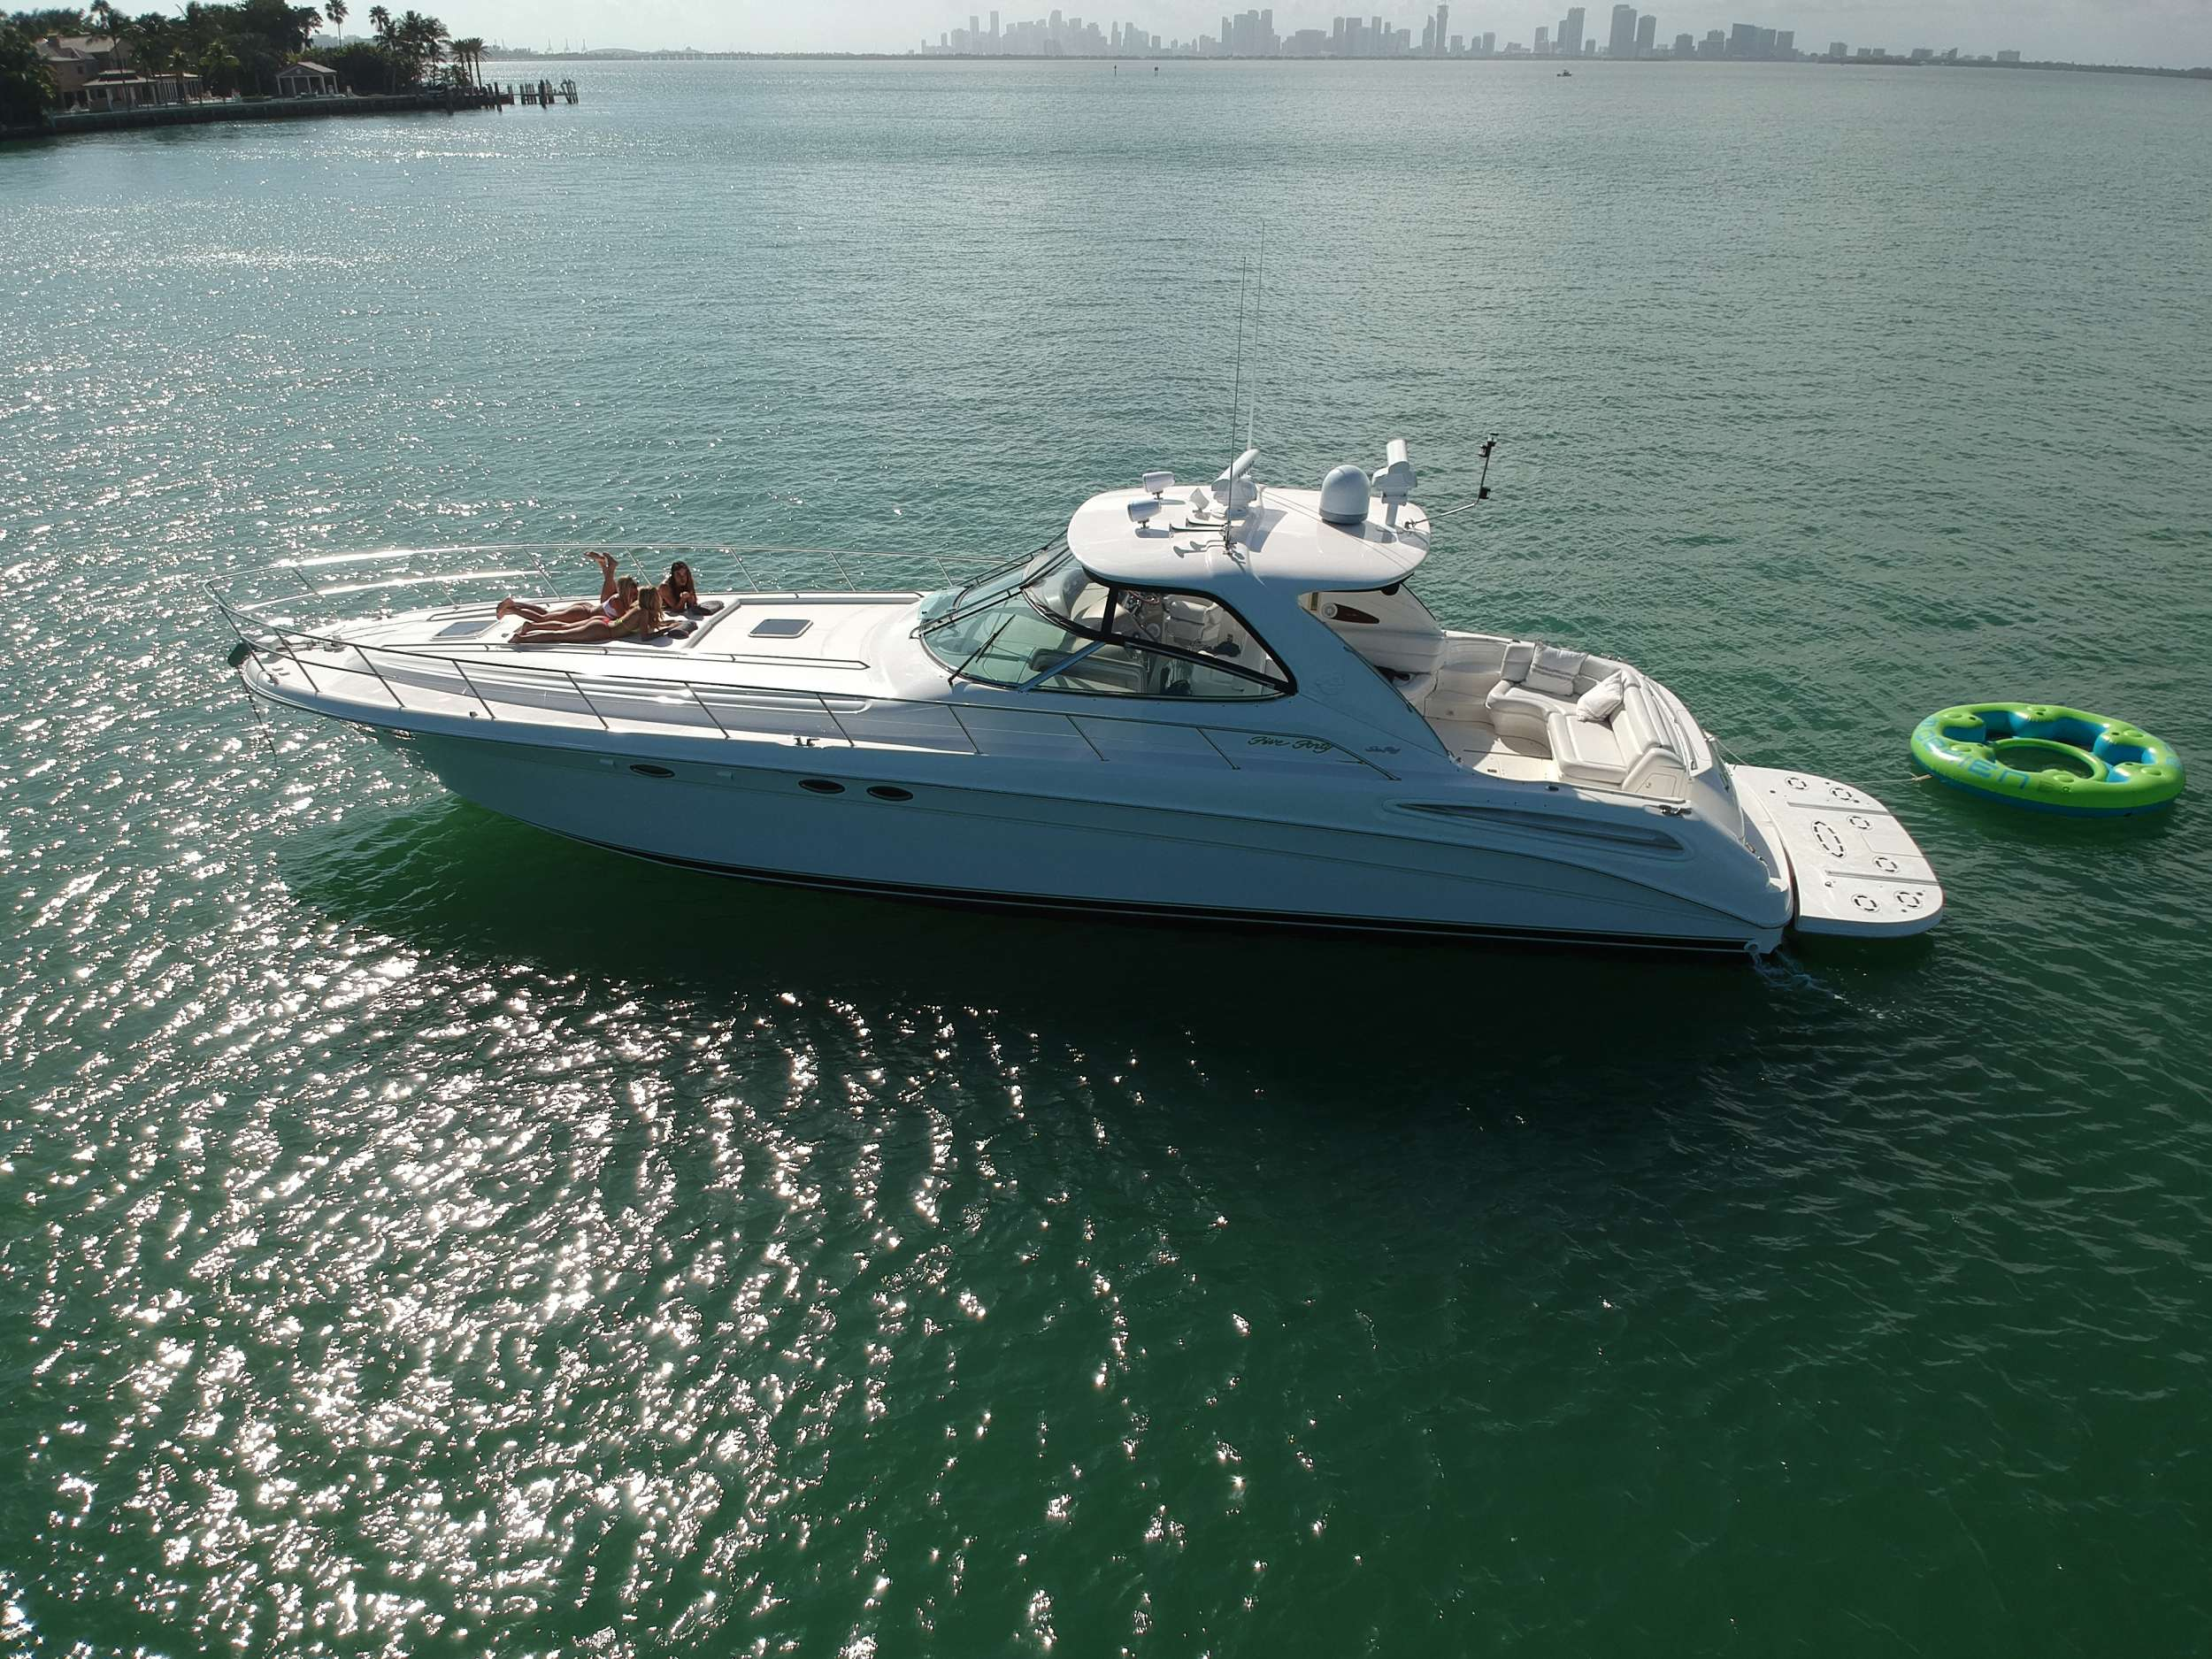 Power Yacht 'Power', 4 PAX,  Crew, 54.00 Ft, 16.00 Meters, Built 2001, Sea Ray, Refit Year 2019